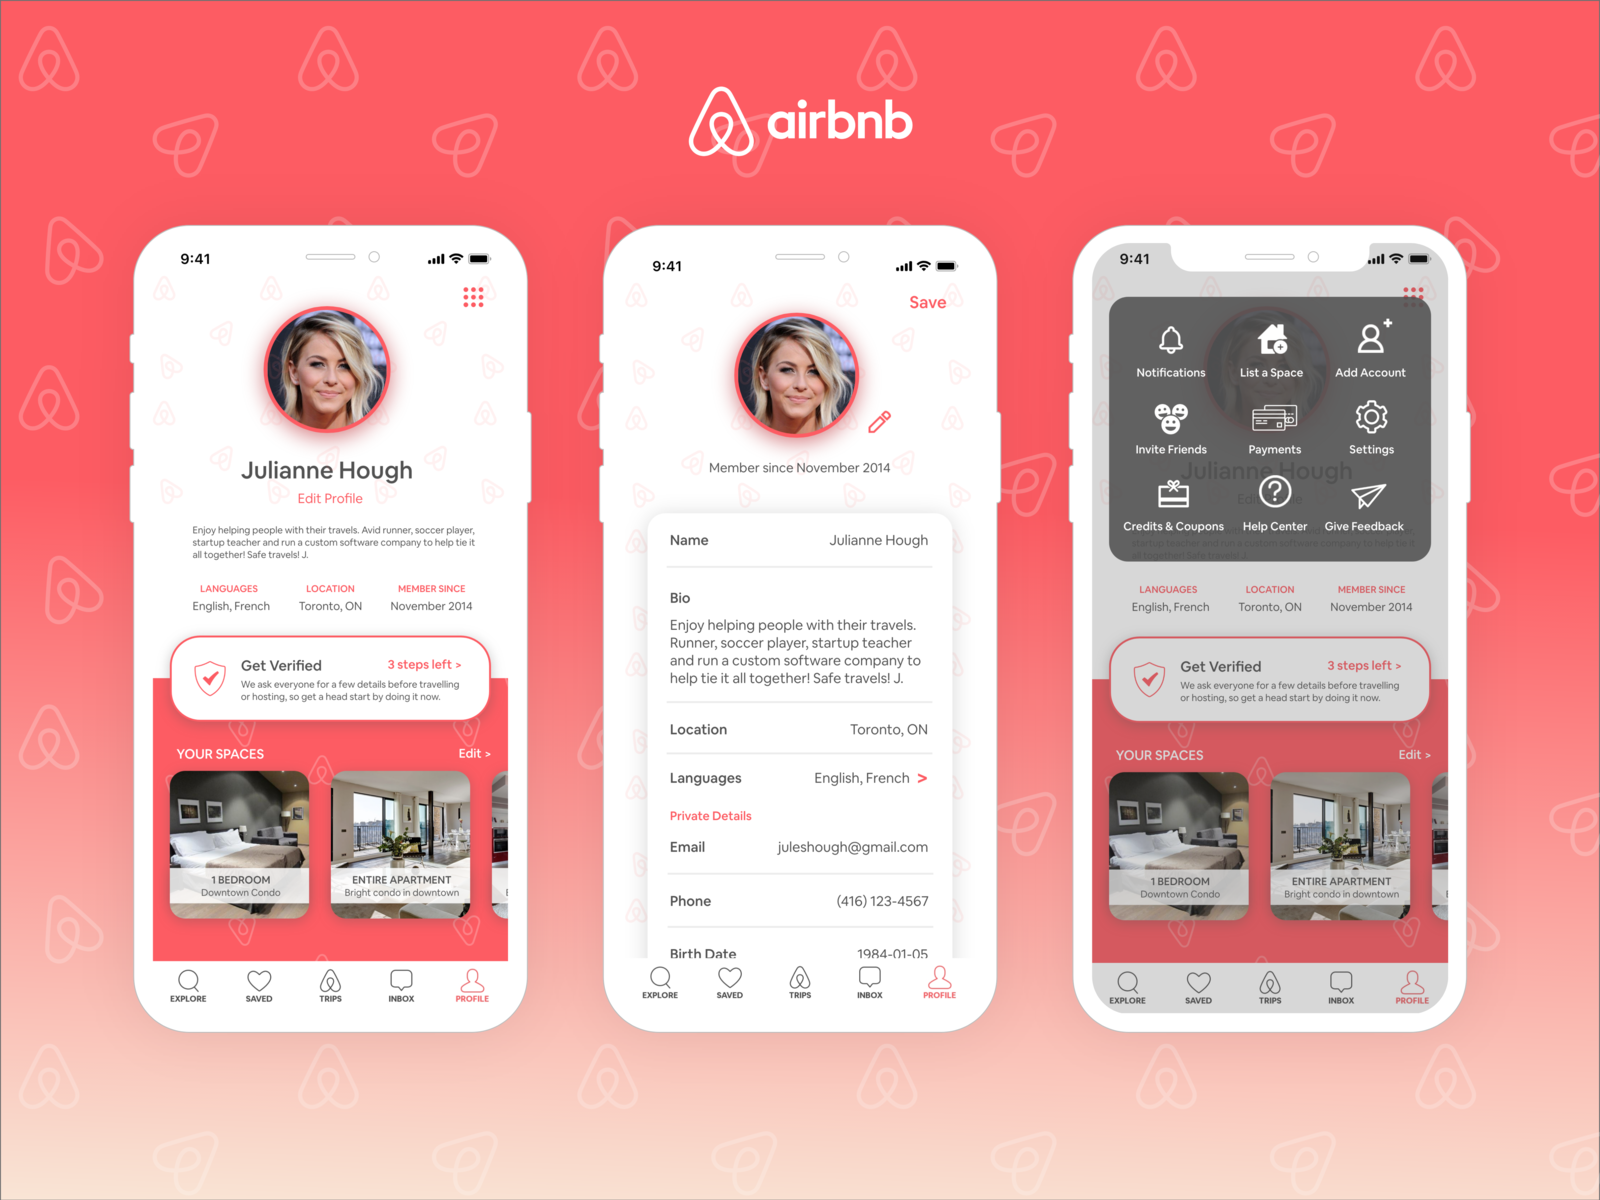 Airbnb User Profile By Sarah Chudawala